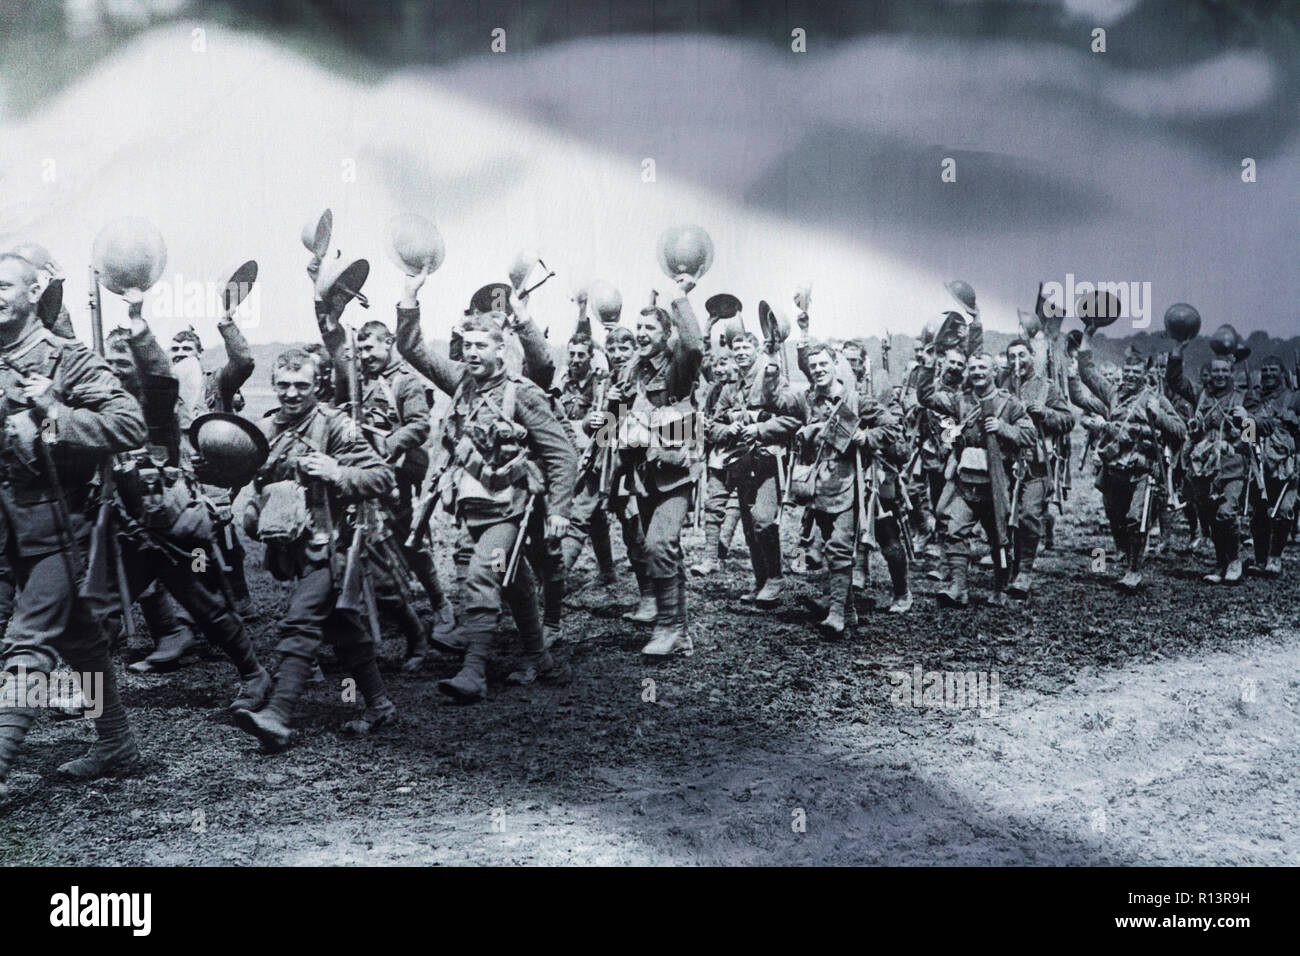 Tommies: WWI, First World War British troops marching on the Western Front. The Great War British soldiers marching. 1914 1918 - Stock Image